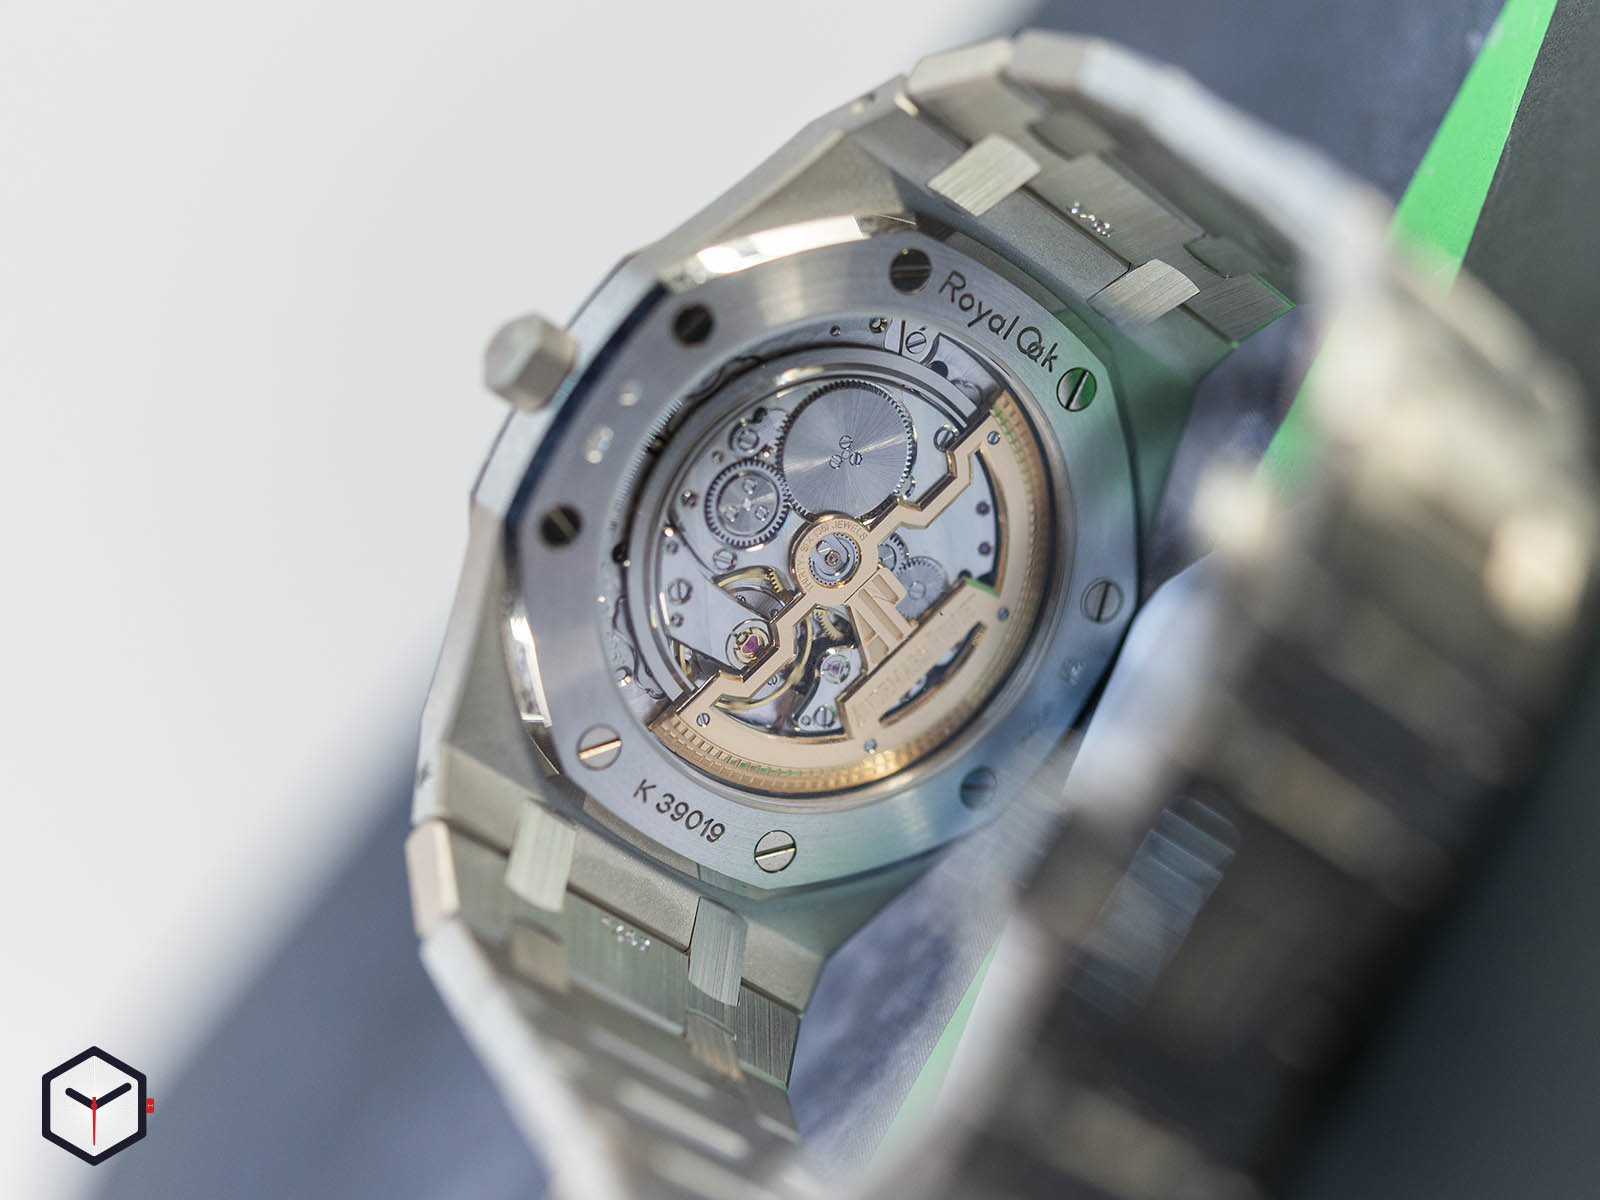 15202bc-oo-1240bc-01-audemars-piguet-royal-oak-jumbo-extra-thin-2019-6.jpg